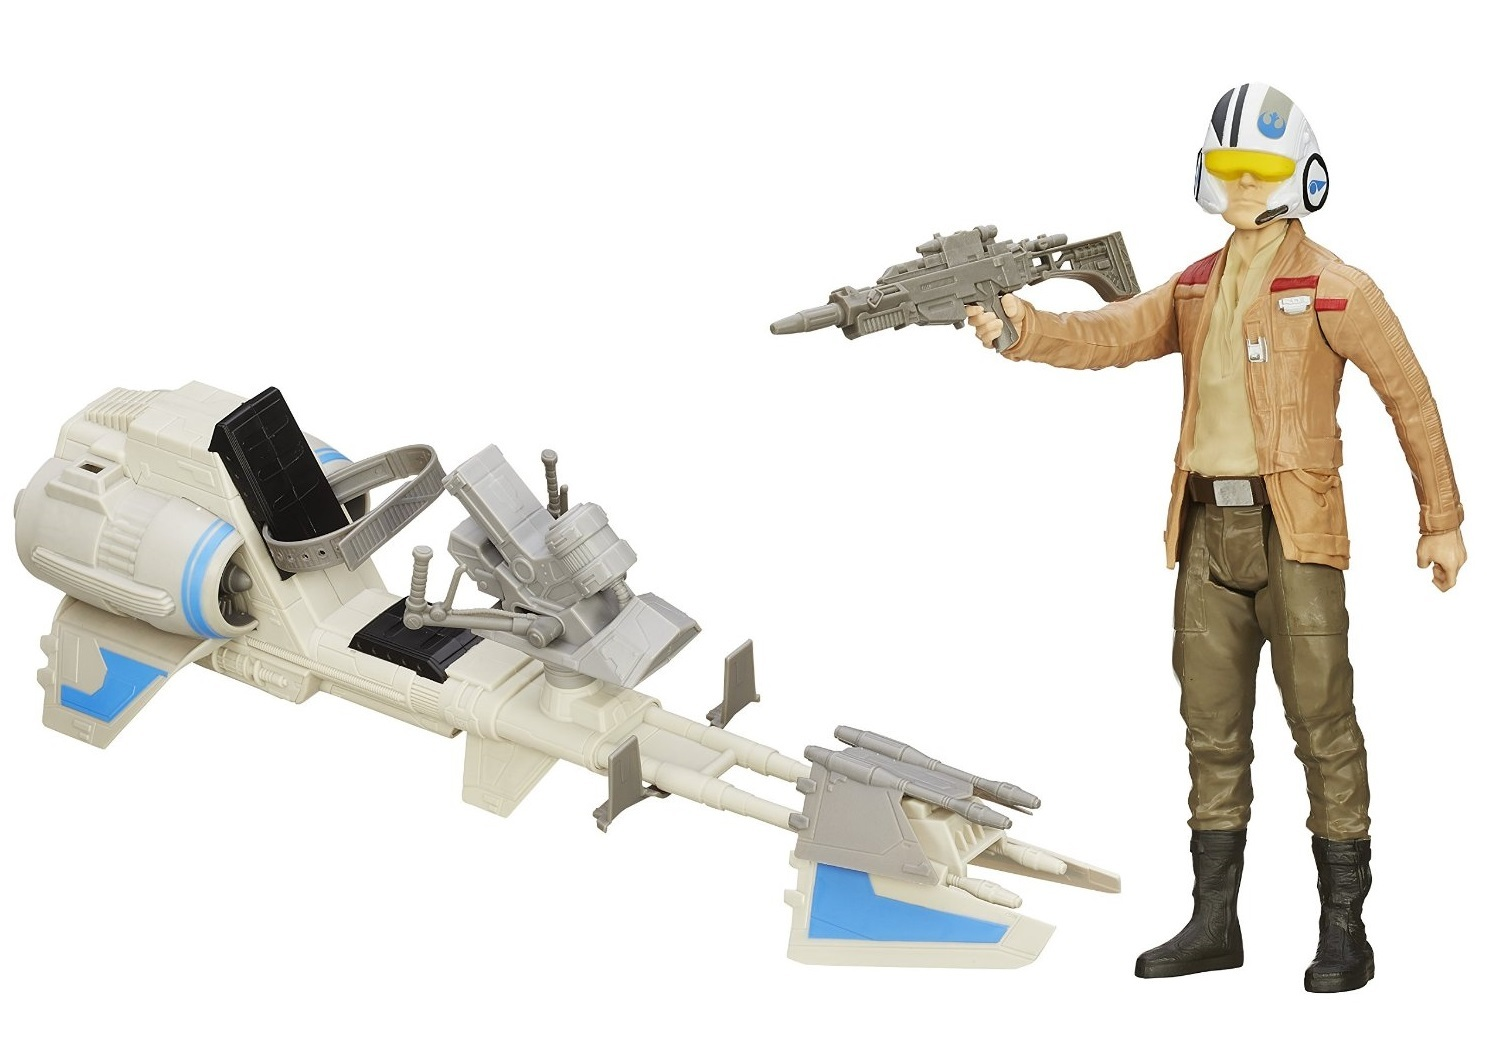 Star Wars: The Force Awakens 12-inch Speeder Bike image